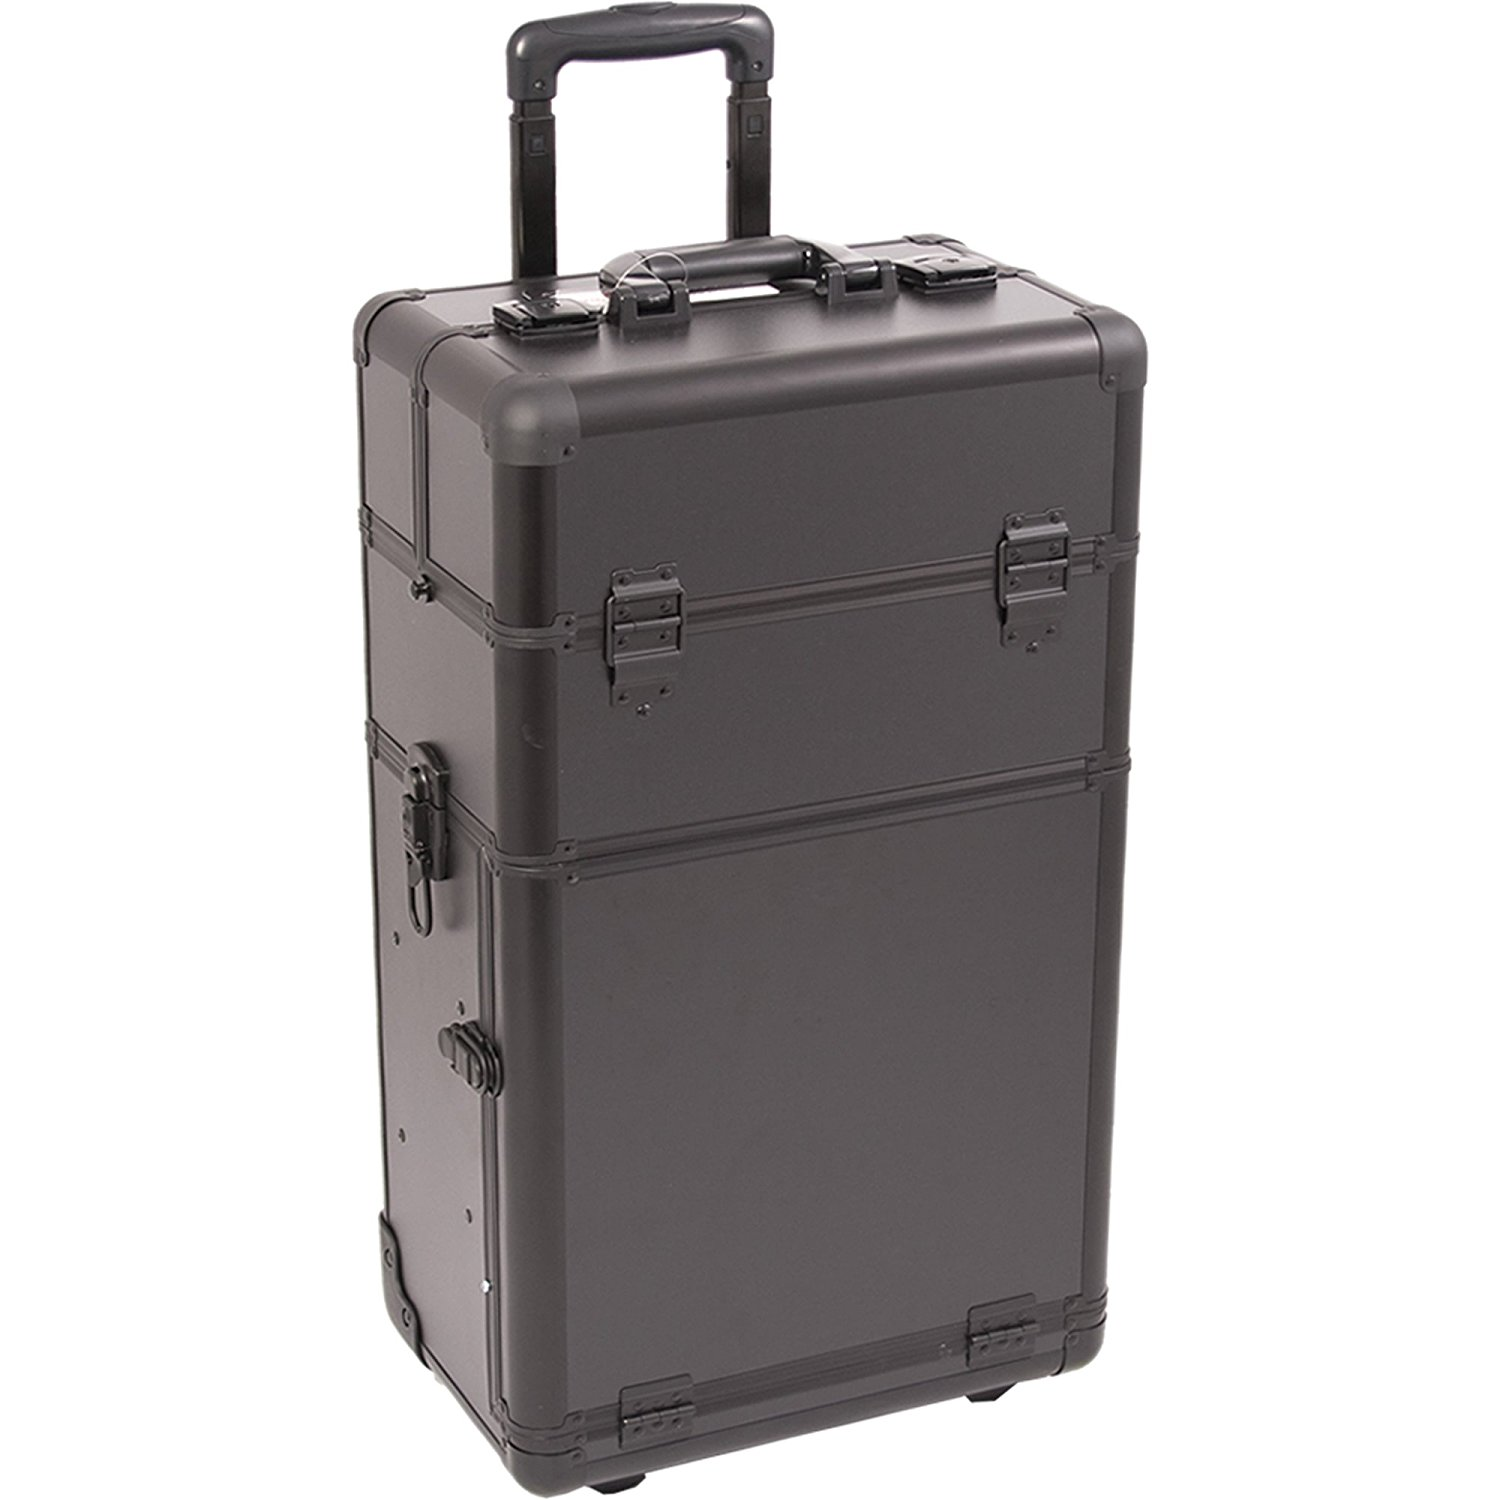 case with corp cases zazuminc fibre drawers com of salsesman style achica luggage l suitcase chest